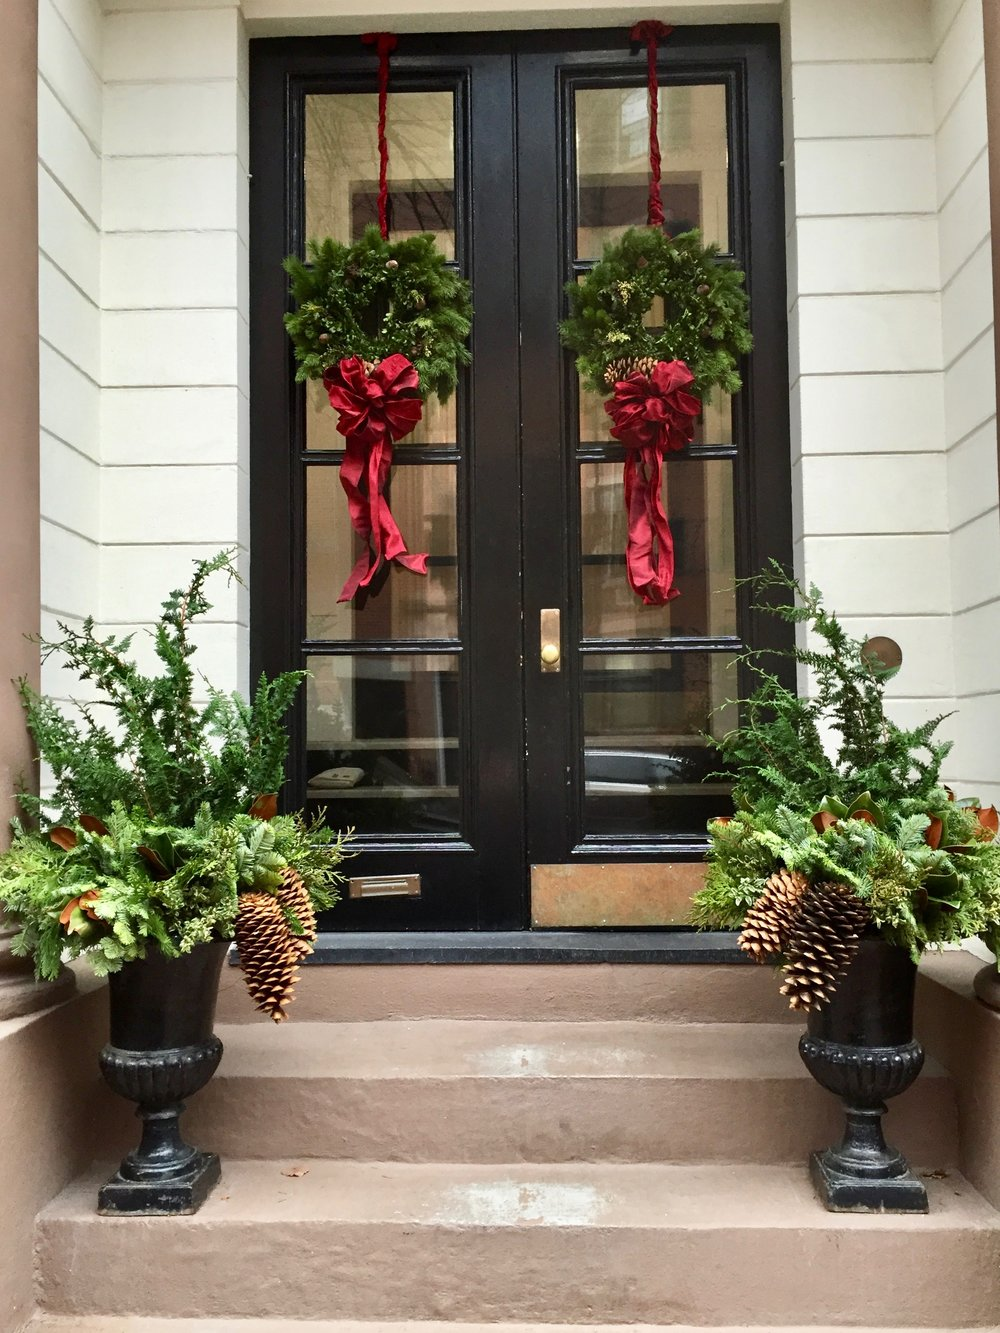 Beacon Hill Christmas Door Boston MA New England.jpg